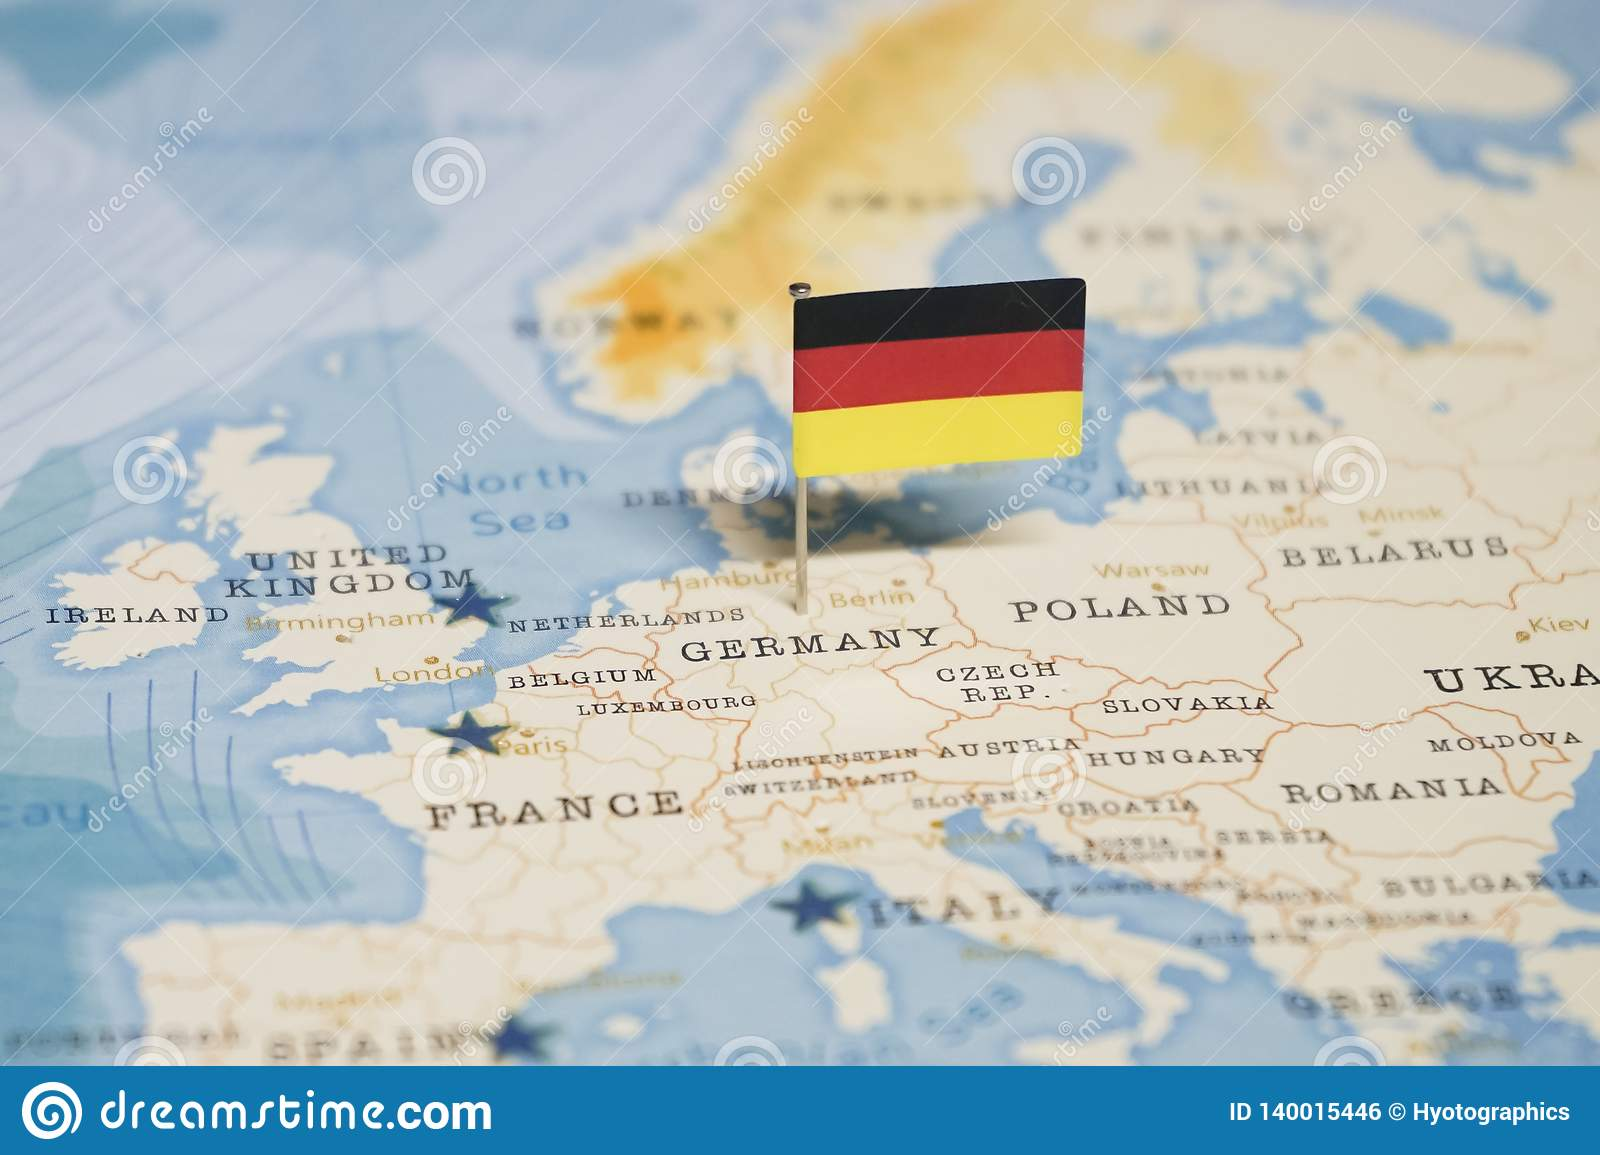 World Map Of Germany.The Flag Of Germany In The World Map Stock Photo Image Of Flag